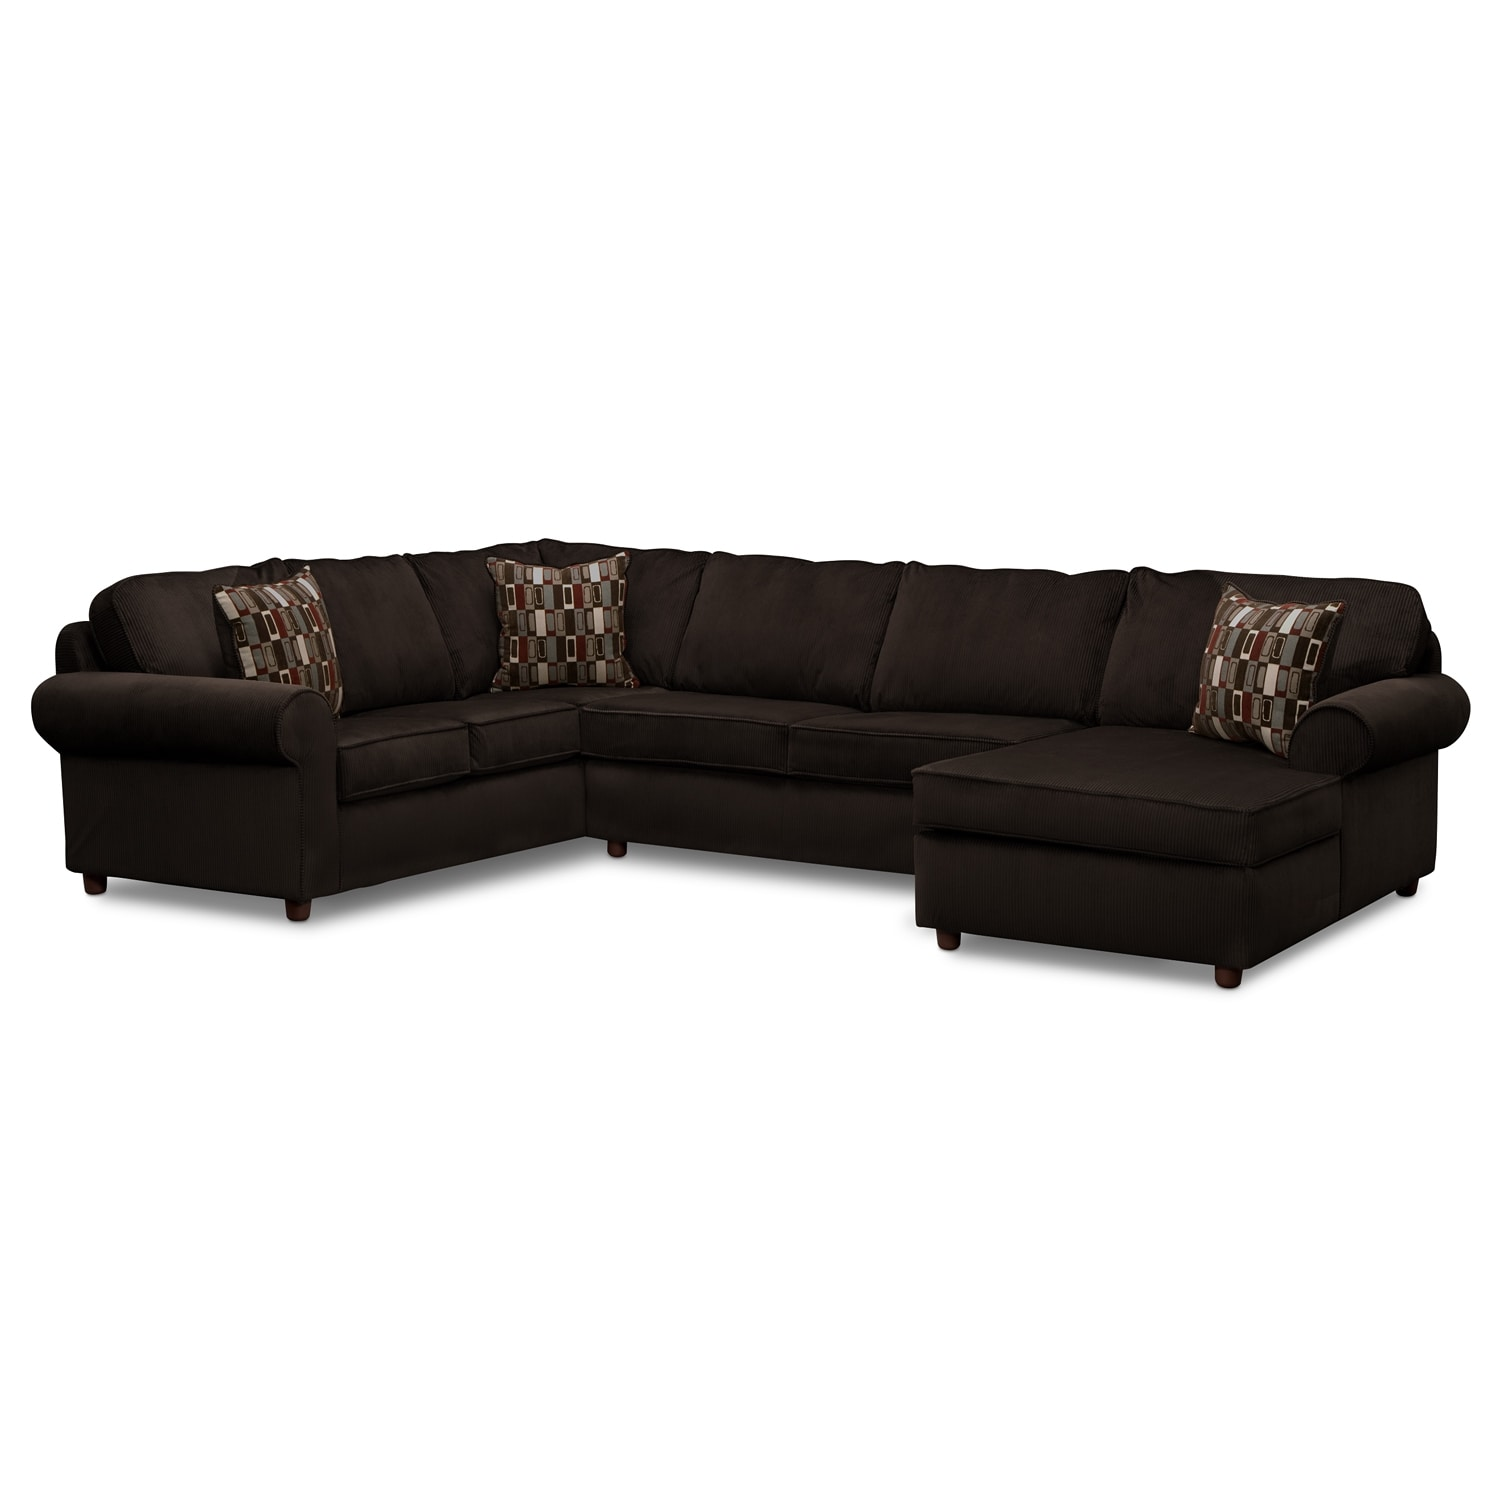 Monarch 3-Piece Sectional - Chocolate